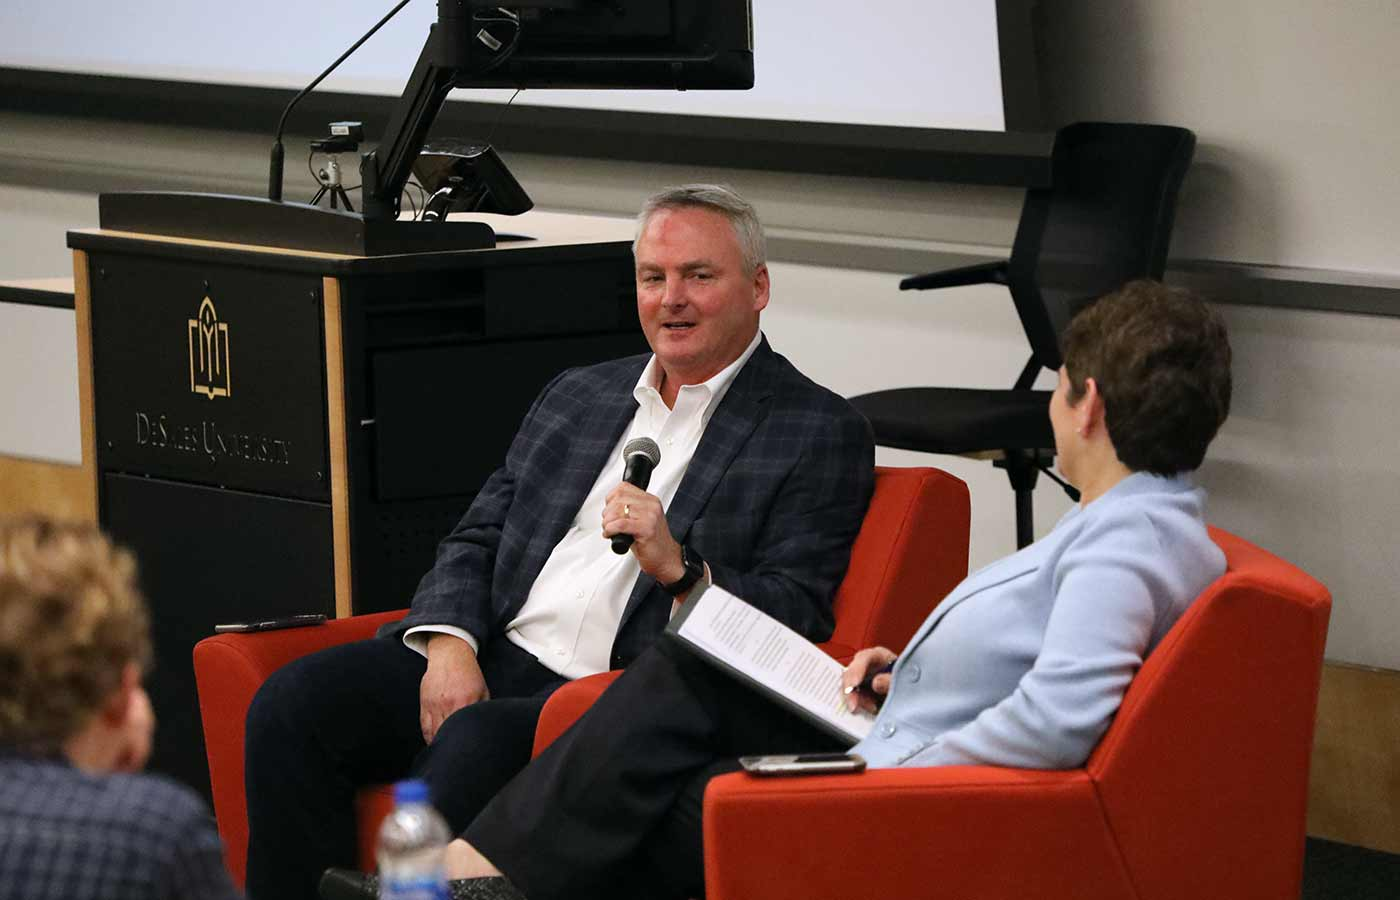 Executive Forum with Kevin Durkin